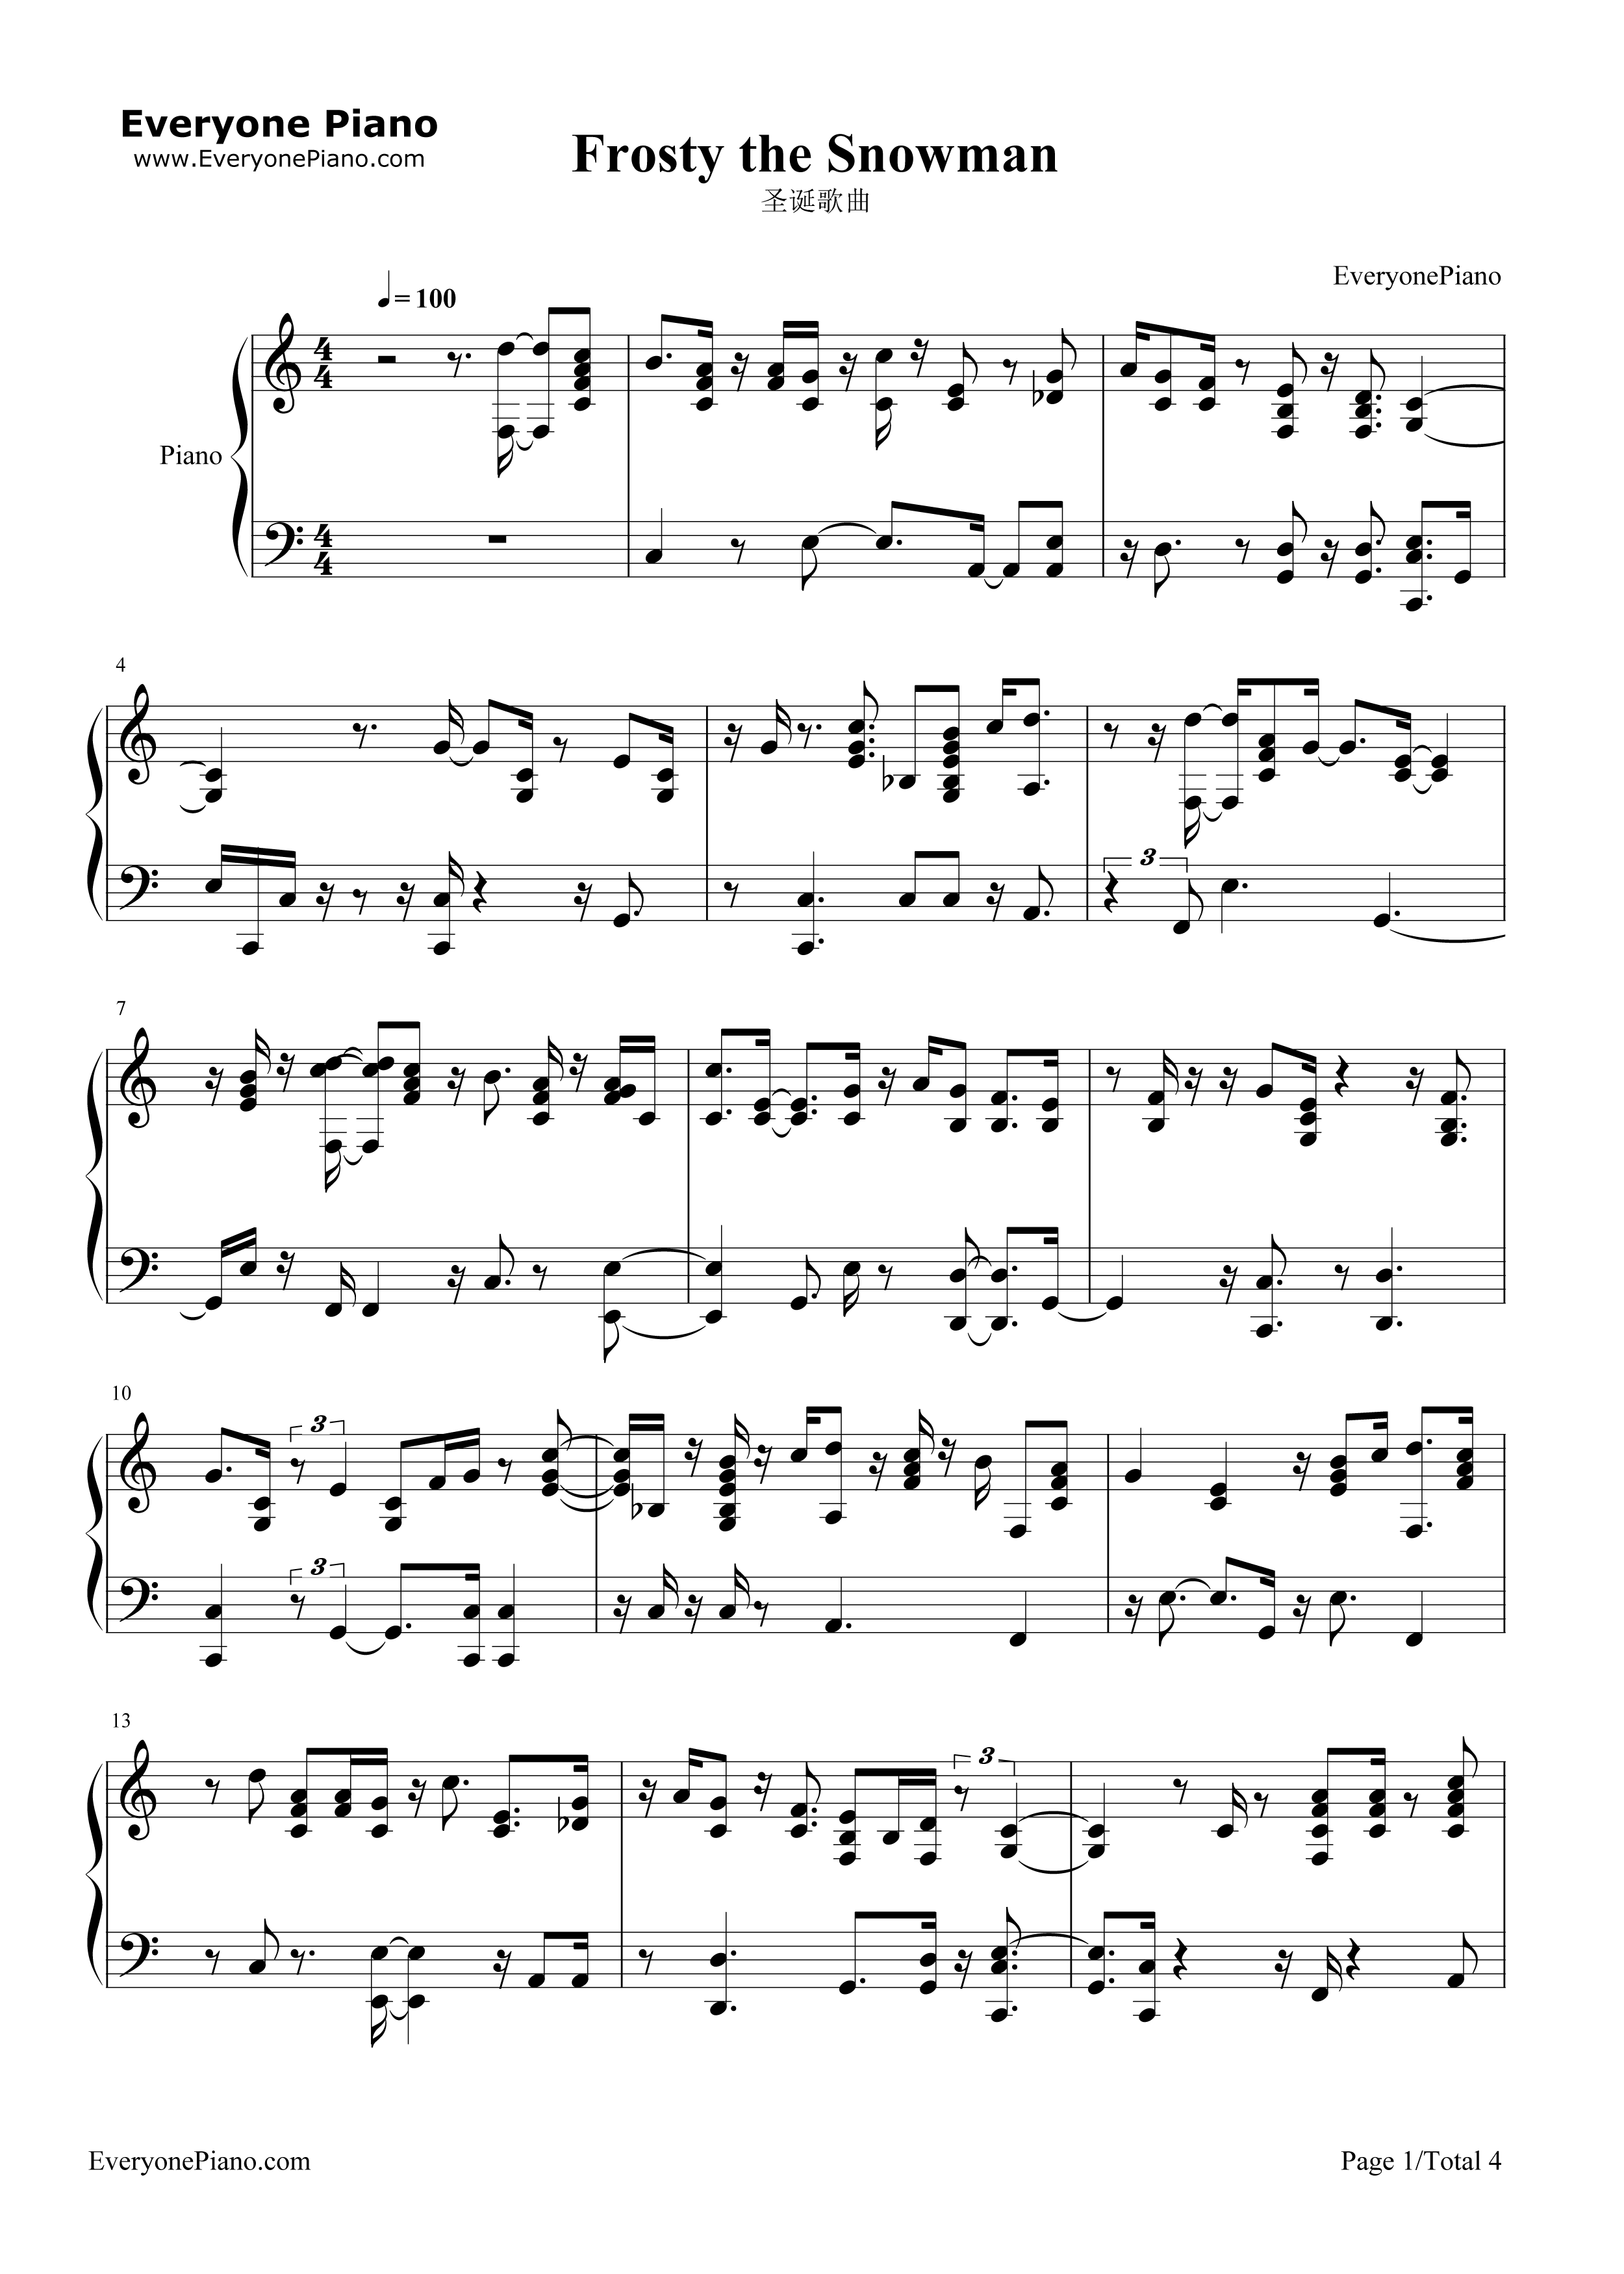 picture about Frosty the Snowman Sheet Music Free Printable called Frosty the Snowman-Xmas Track Stave Preview